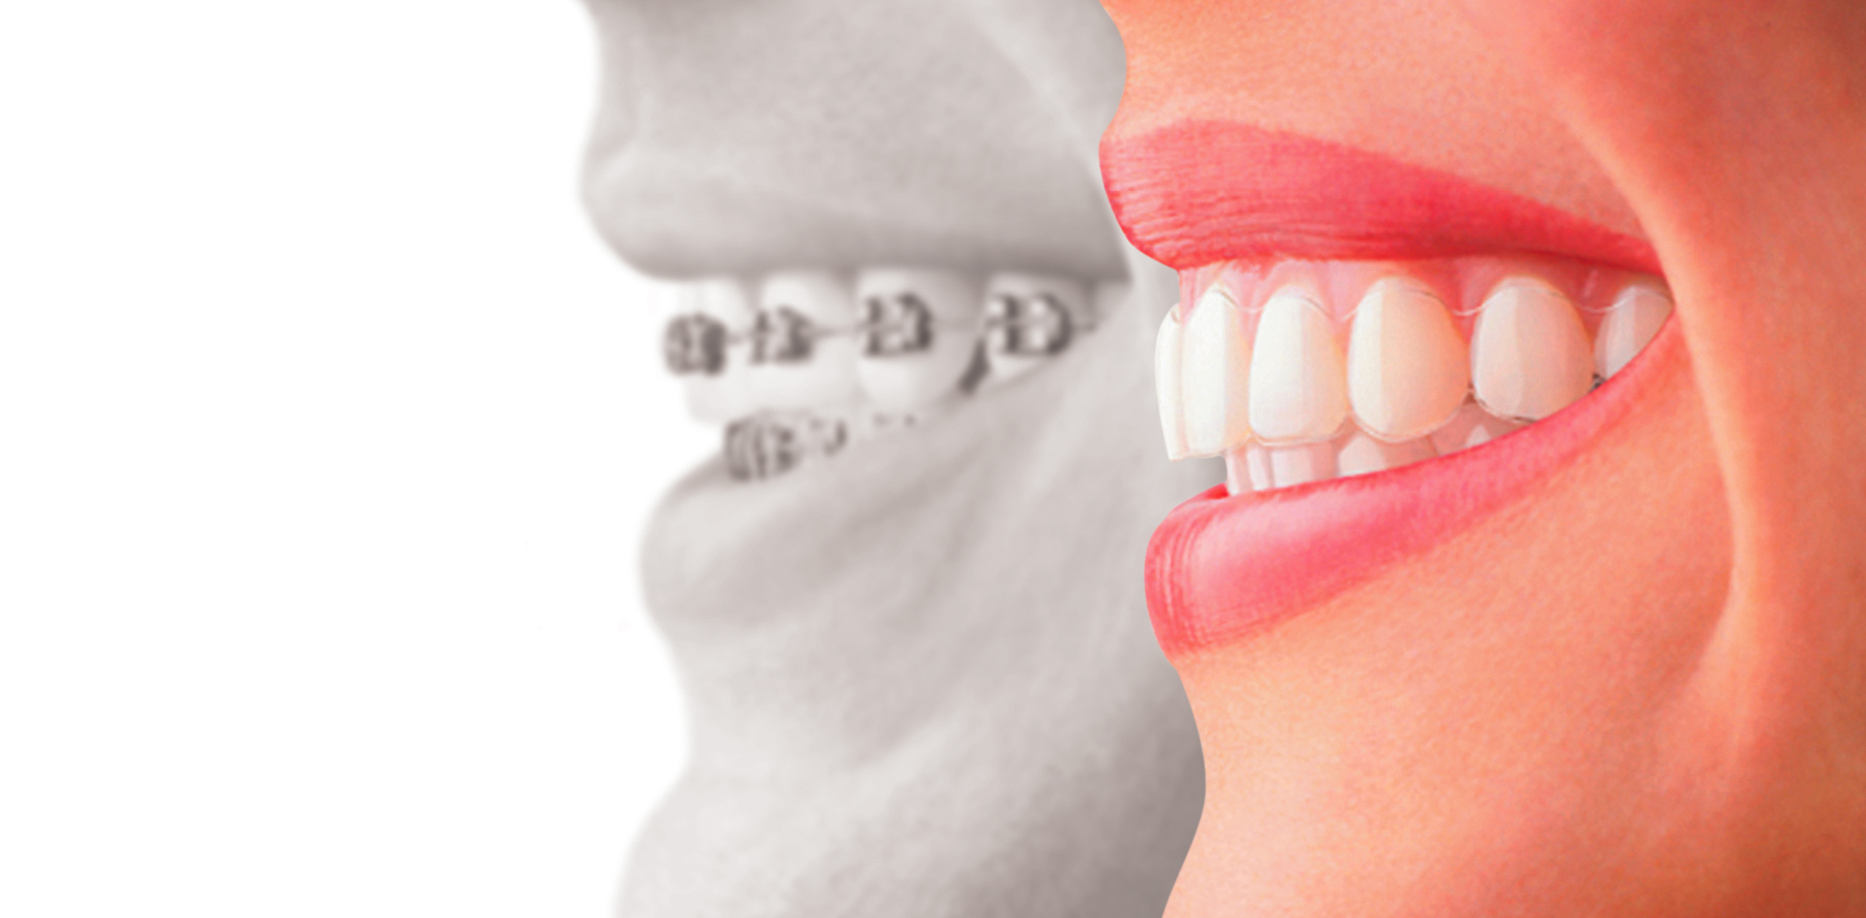 Orthodontie adulte invisible - Invisalign